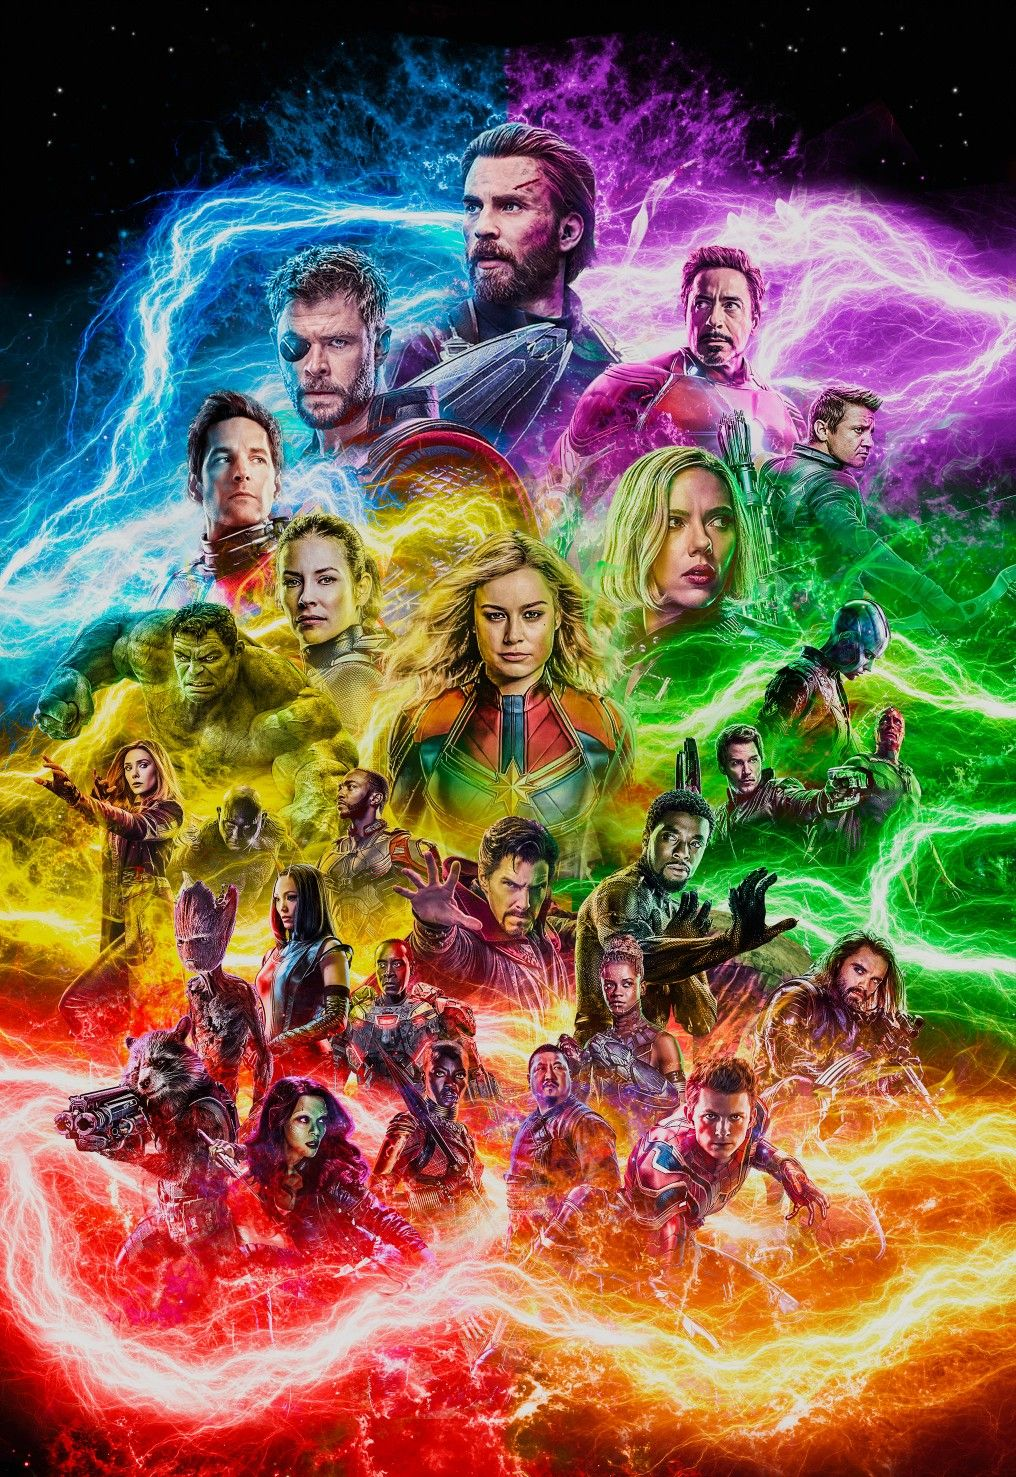 We have added the latest collection of Avengers 4 Endgame